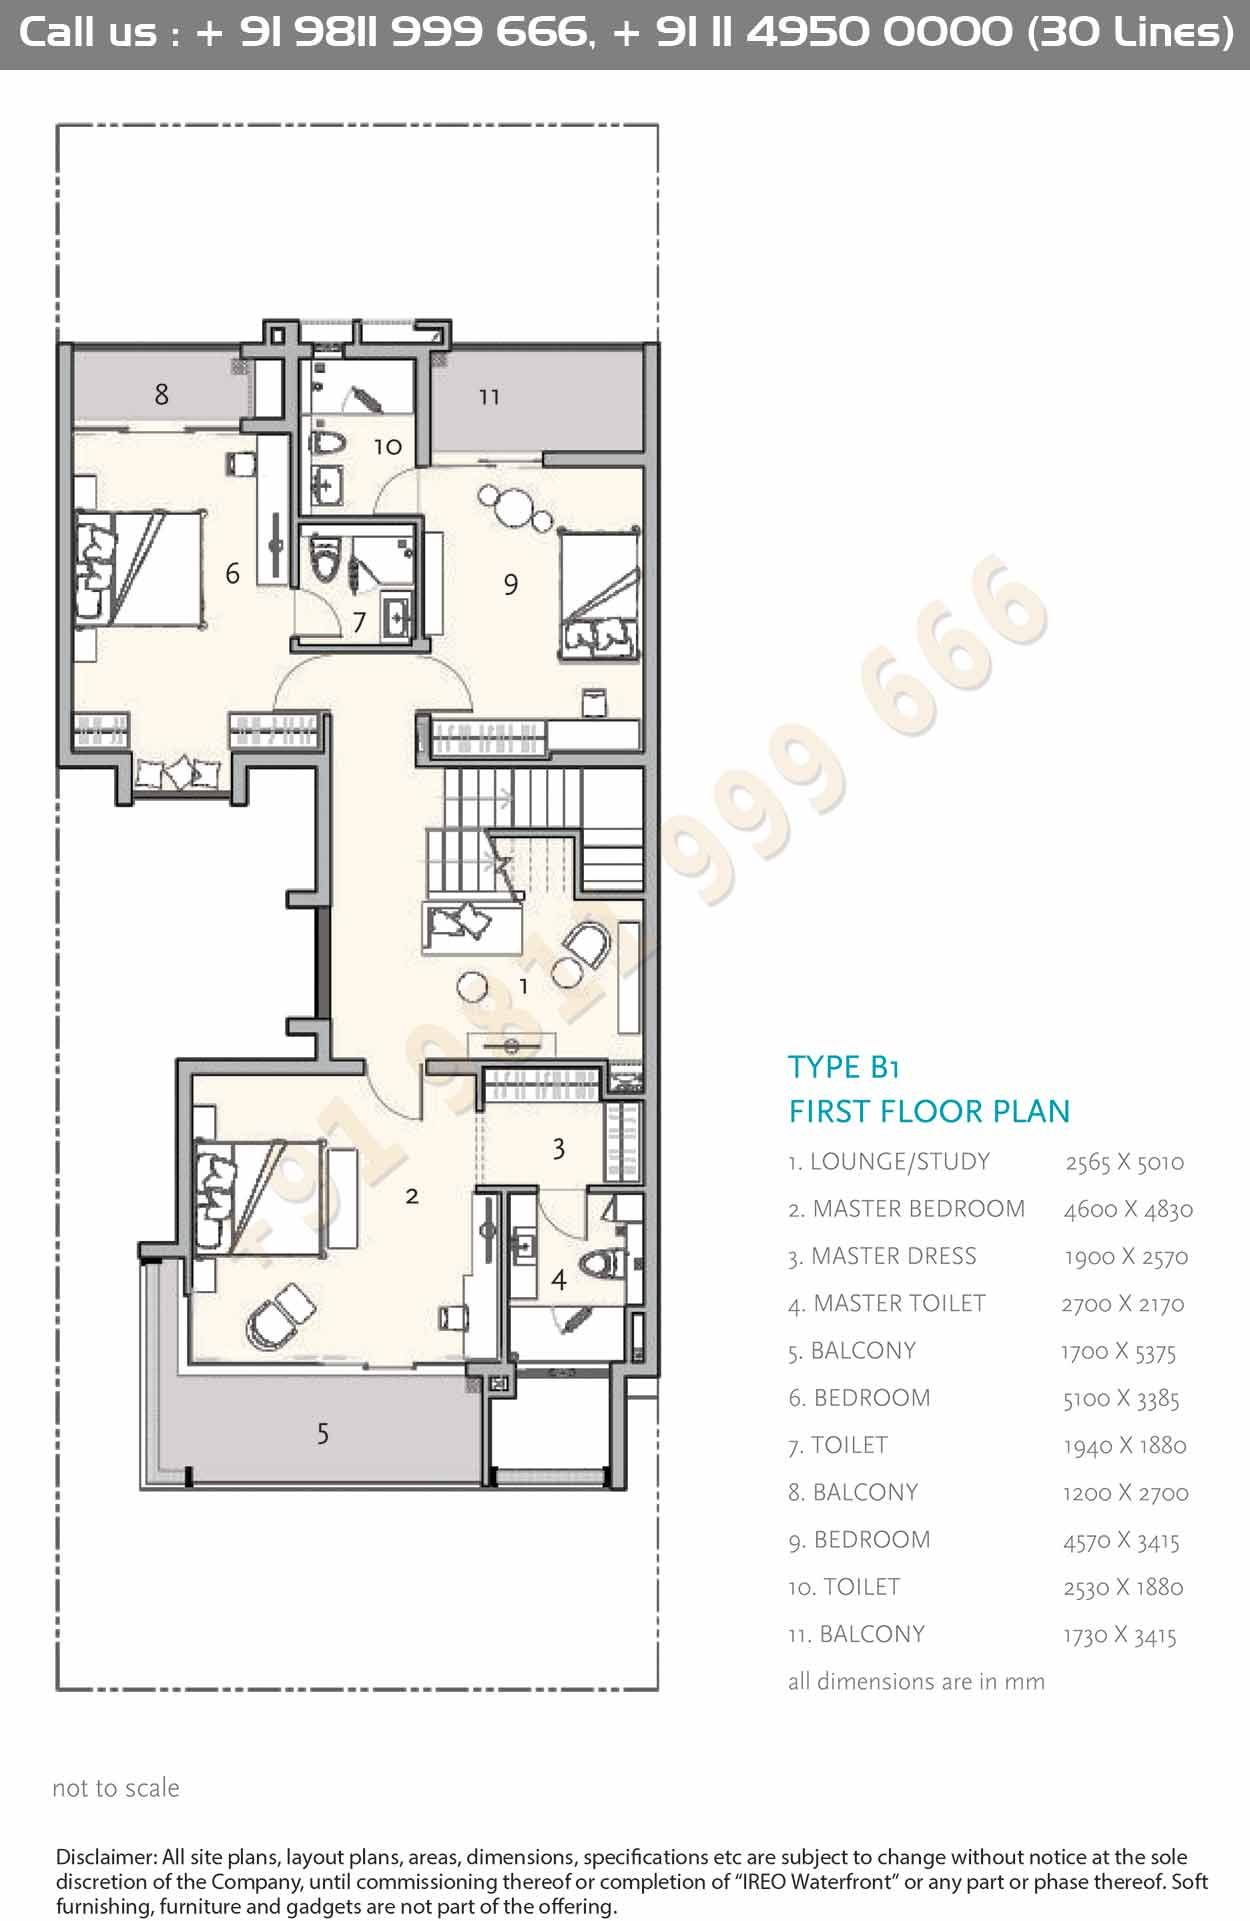 Type B1 First Floor Plan House Construction Plan Floor Plans Courtyard House Plans